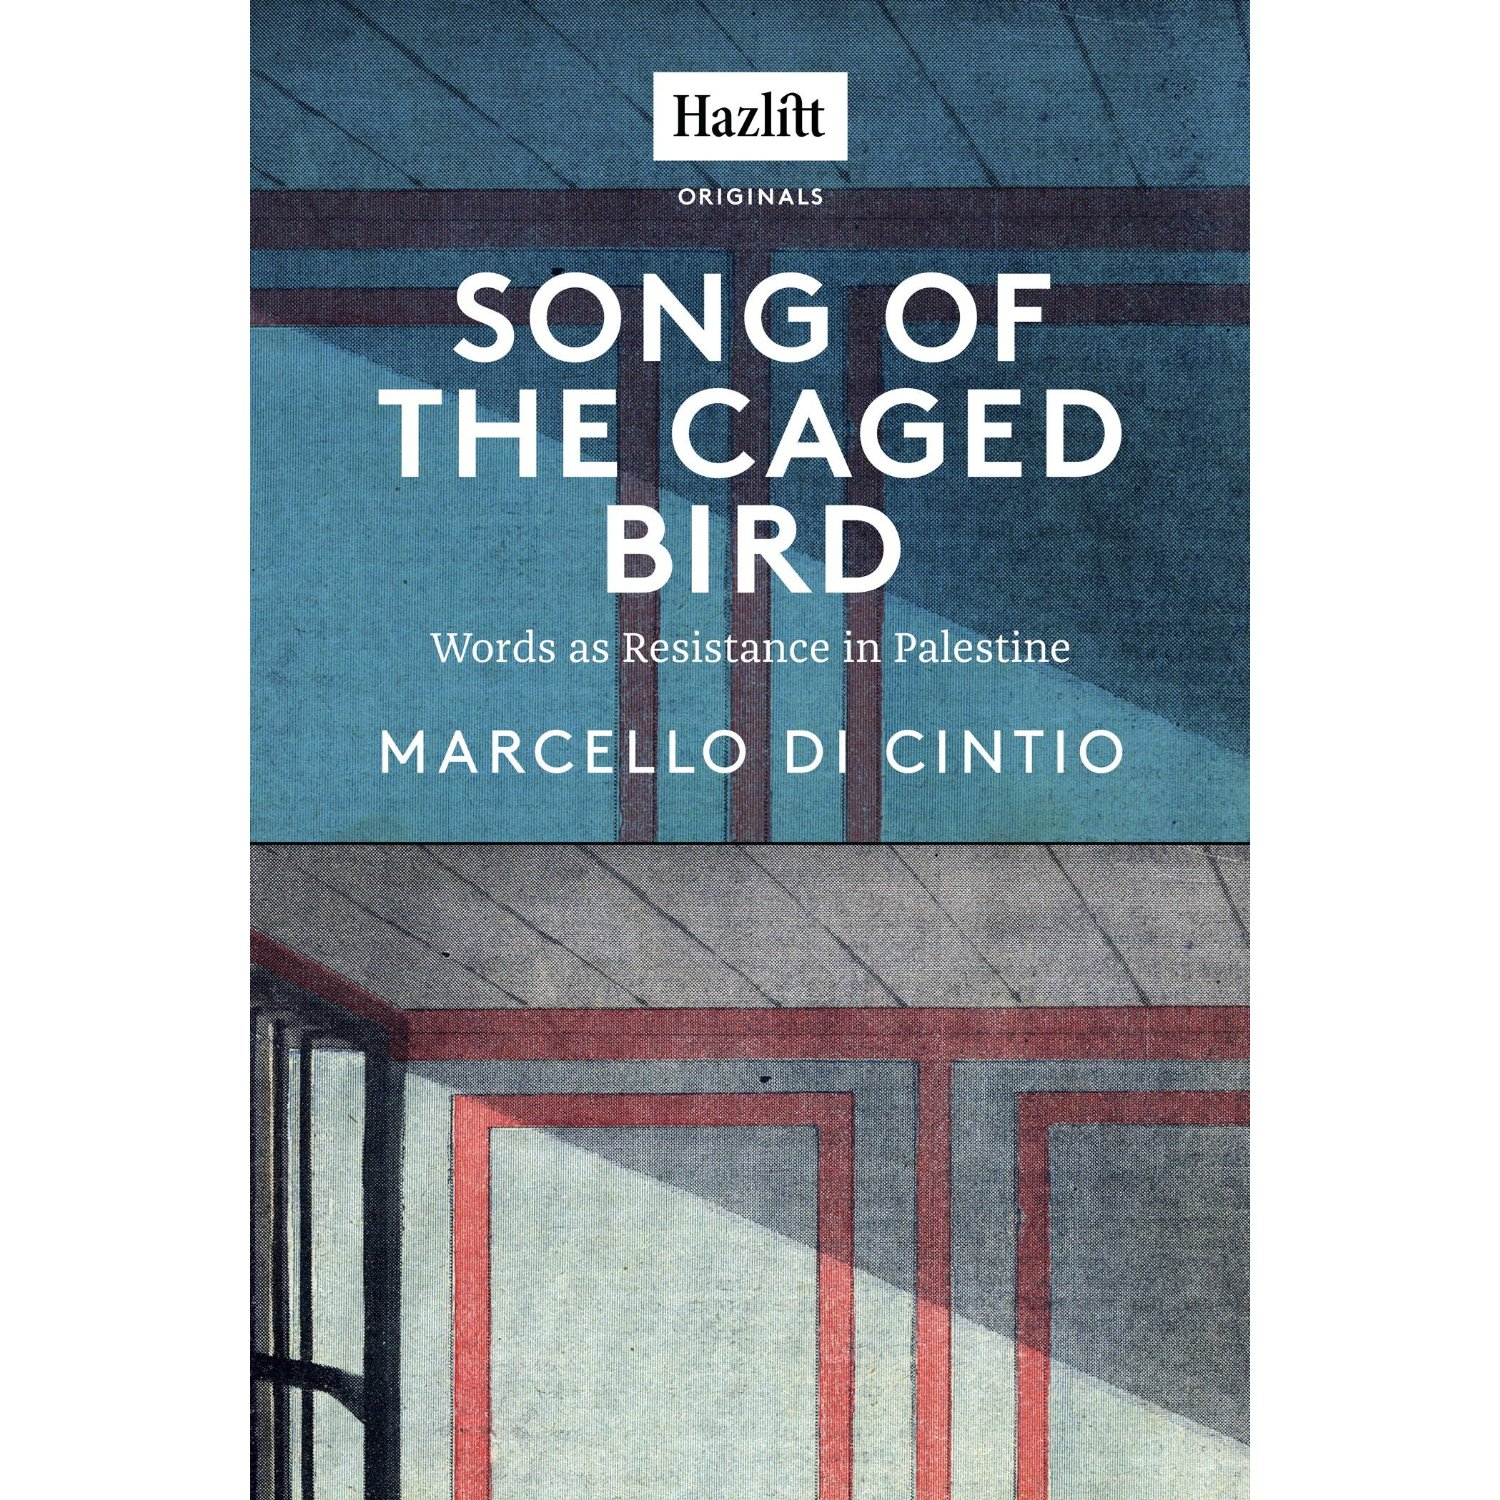 caged bird and song to the The caged bird's song is heard from the distant hills because it sings of freedom, it sings of hope and wants to inspire others the song is strong enough to be.